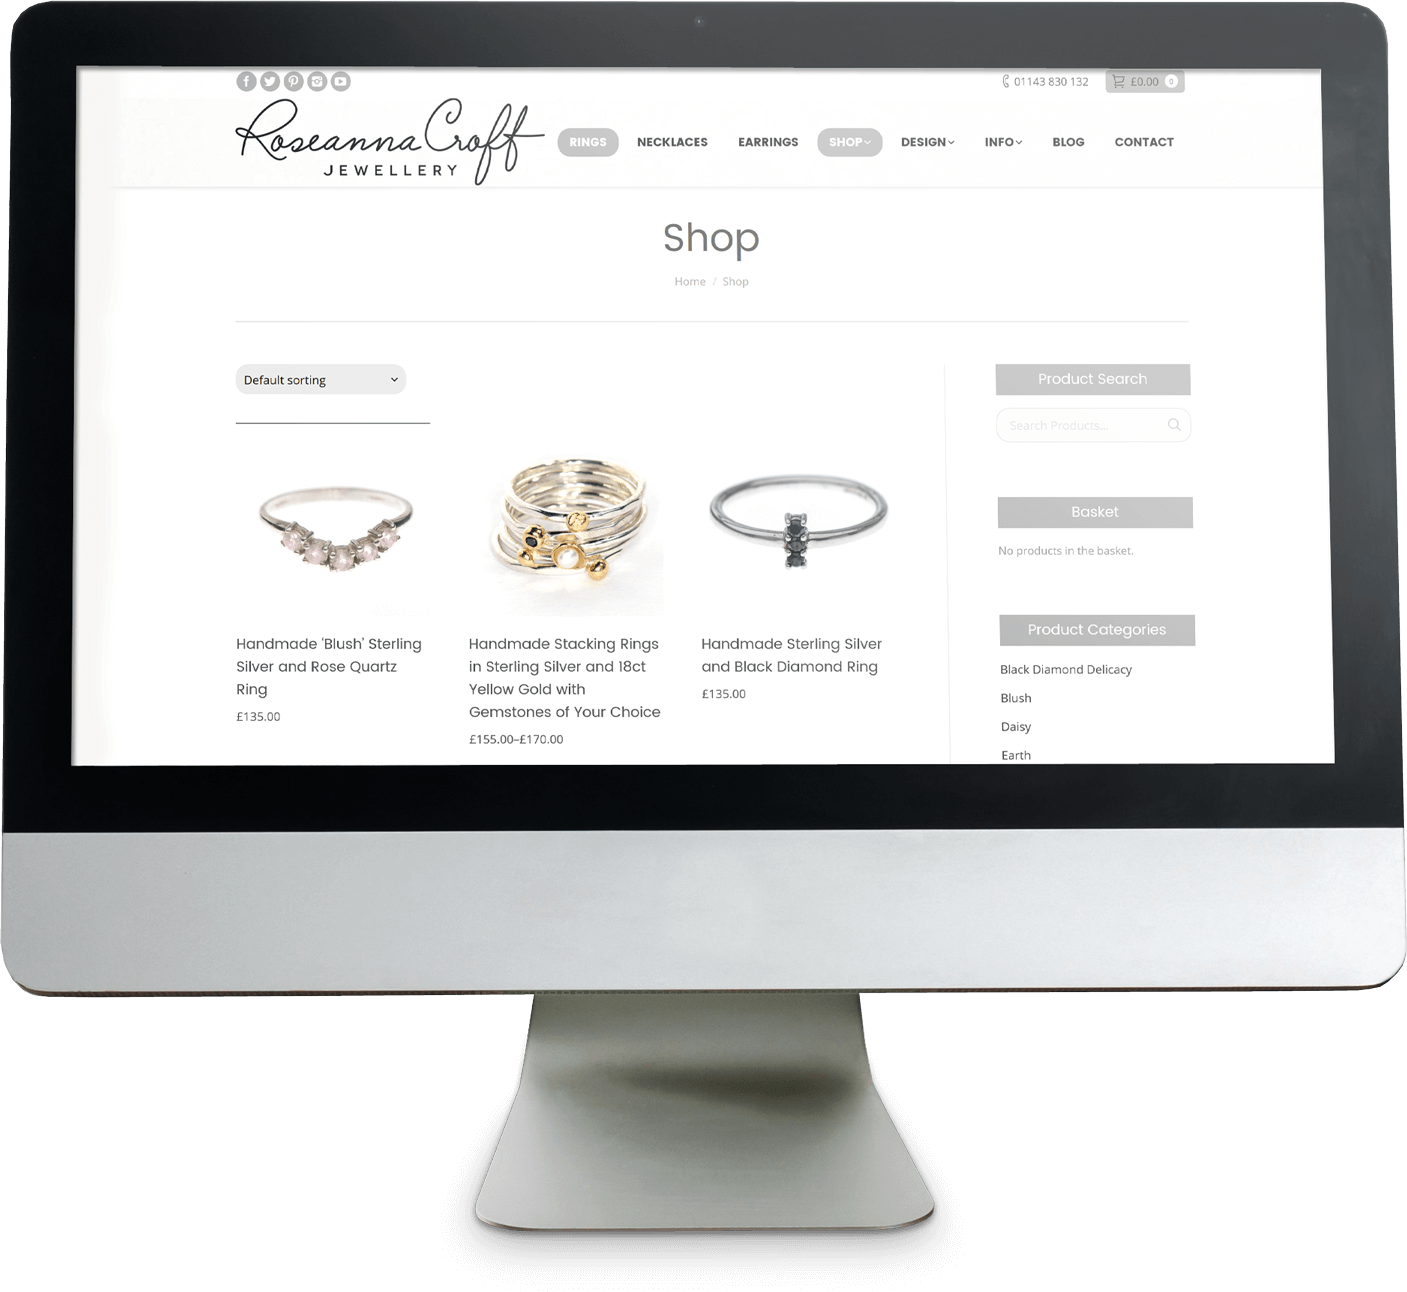 Roseanna Croft Jewellery screenshot